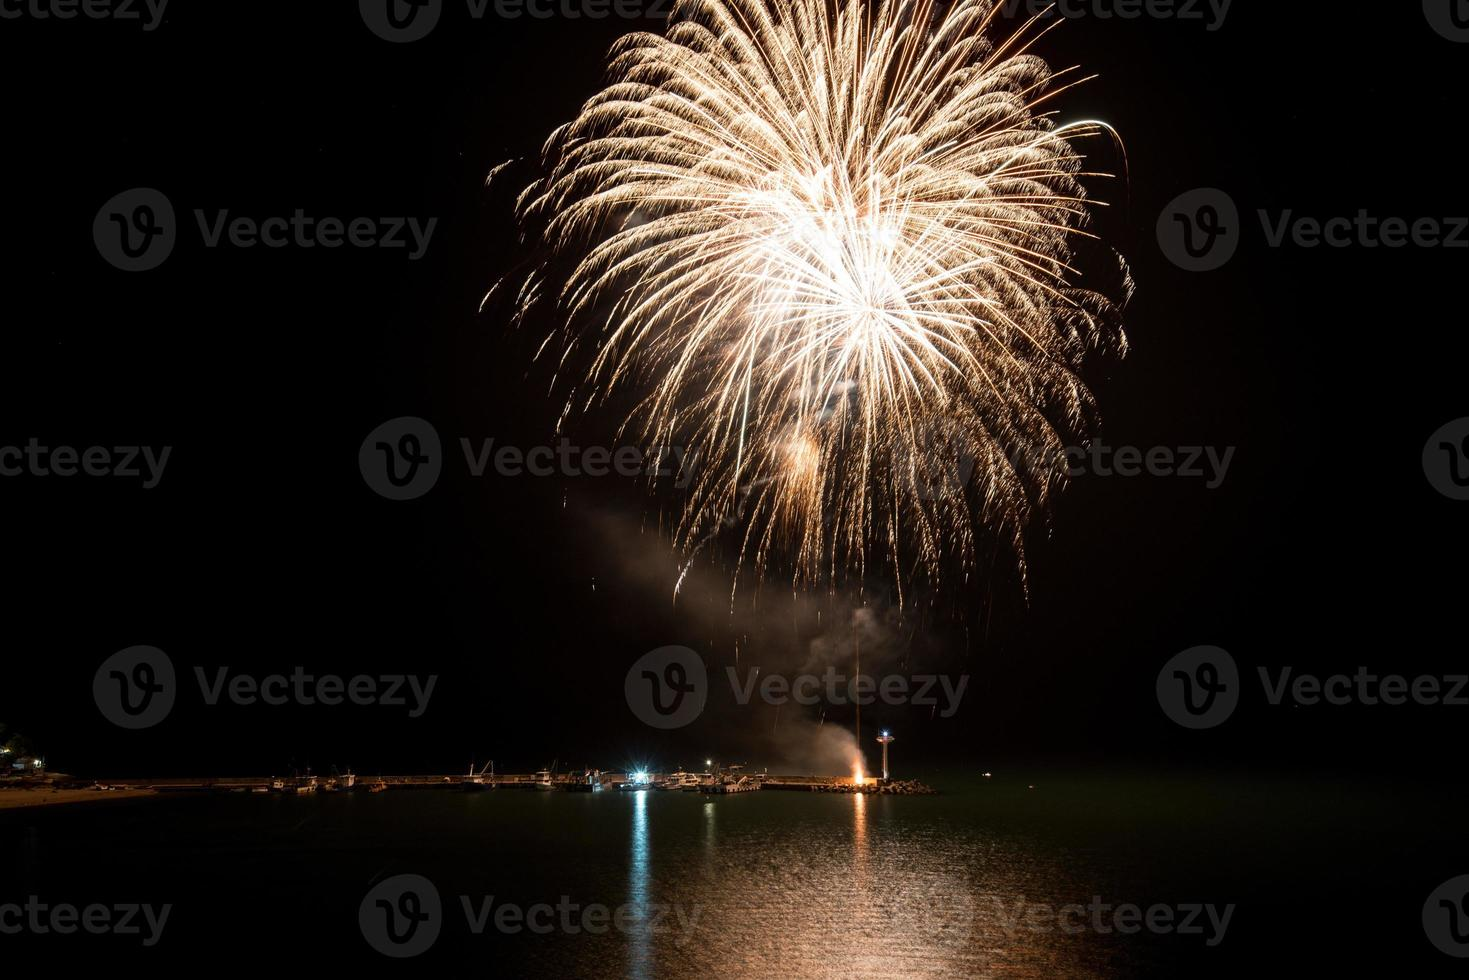 Fireworks on the beach - copy space photo